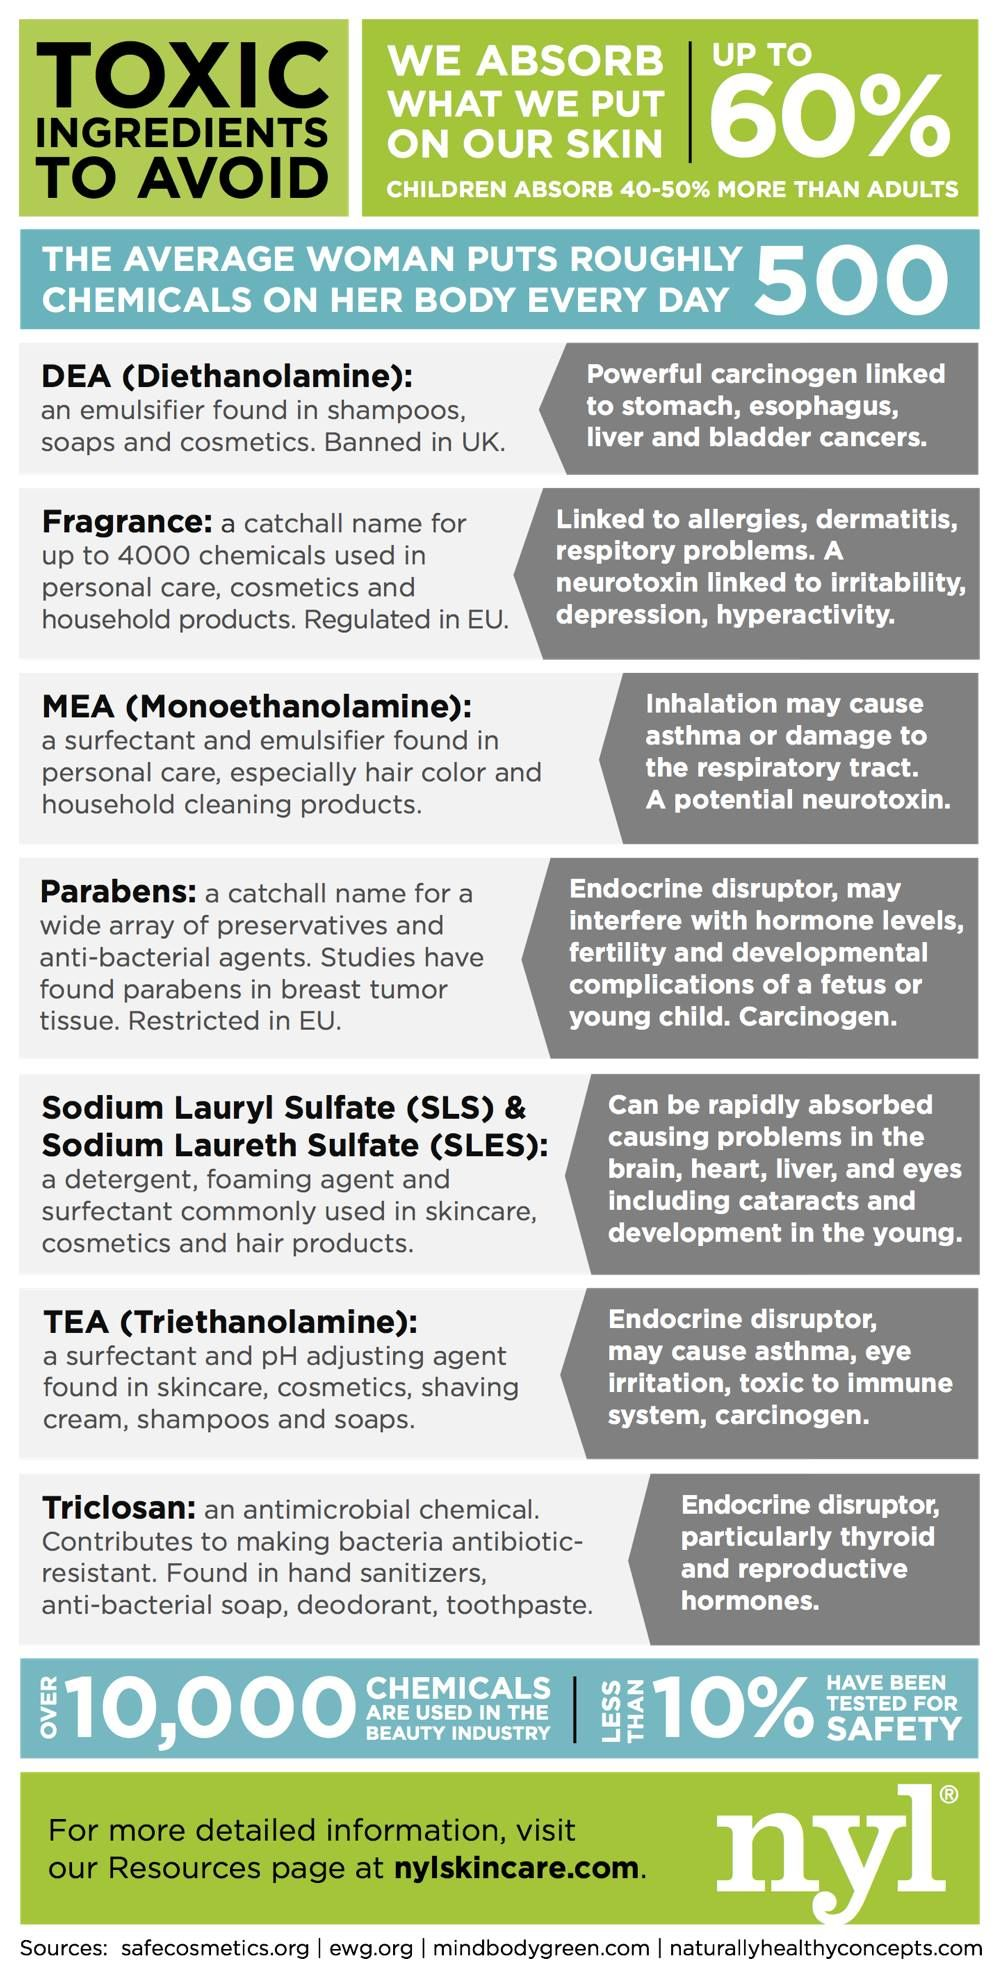 A Good List To Follow When Trying To Get On Board With The Healthy Products Healthy Home Compan Free Skin Care Products Natural Skin Care Skincare Ingredients